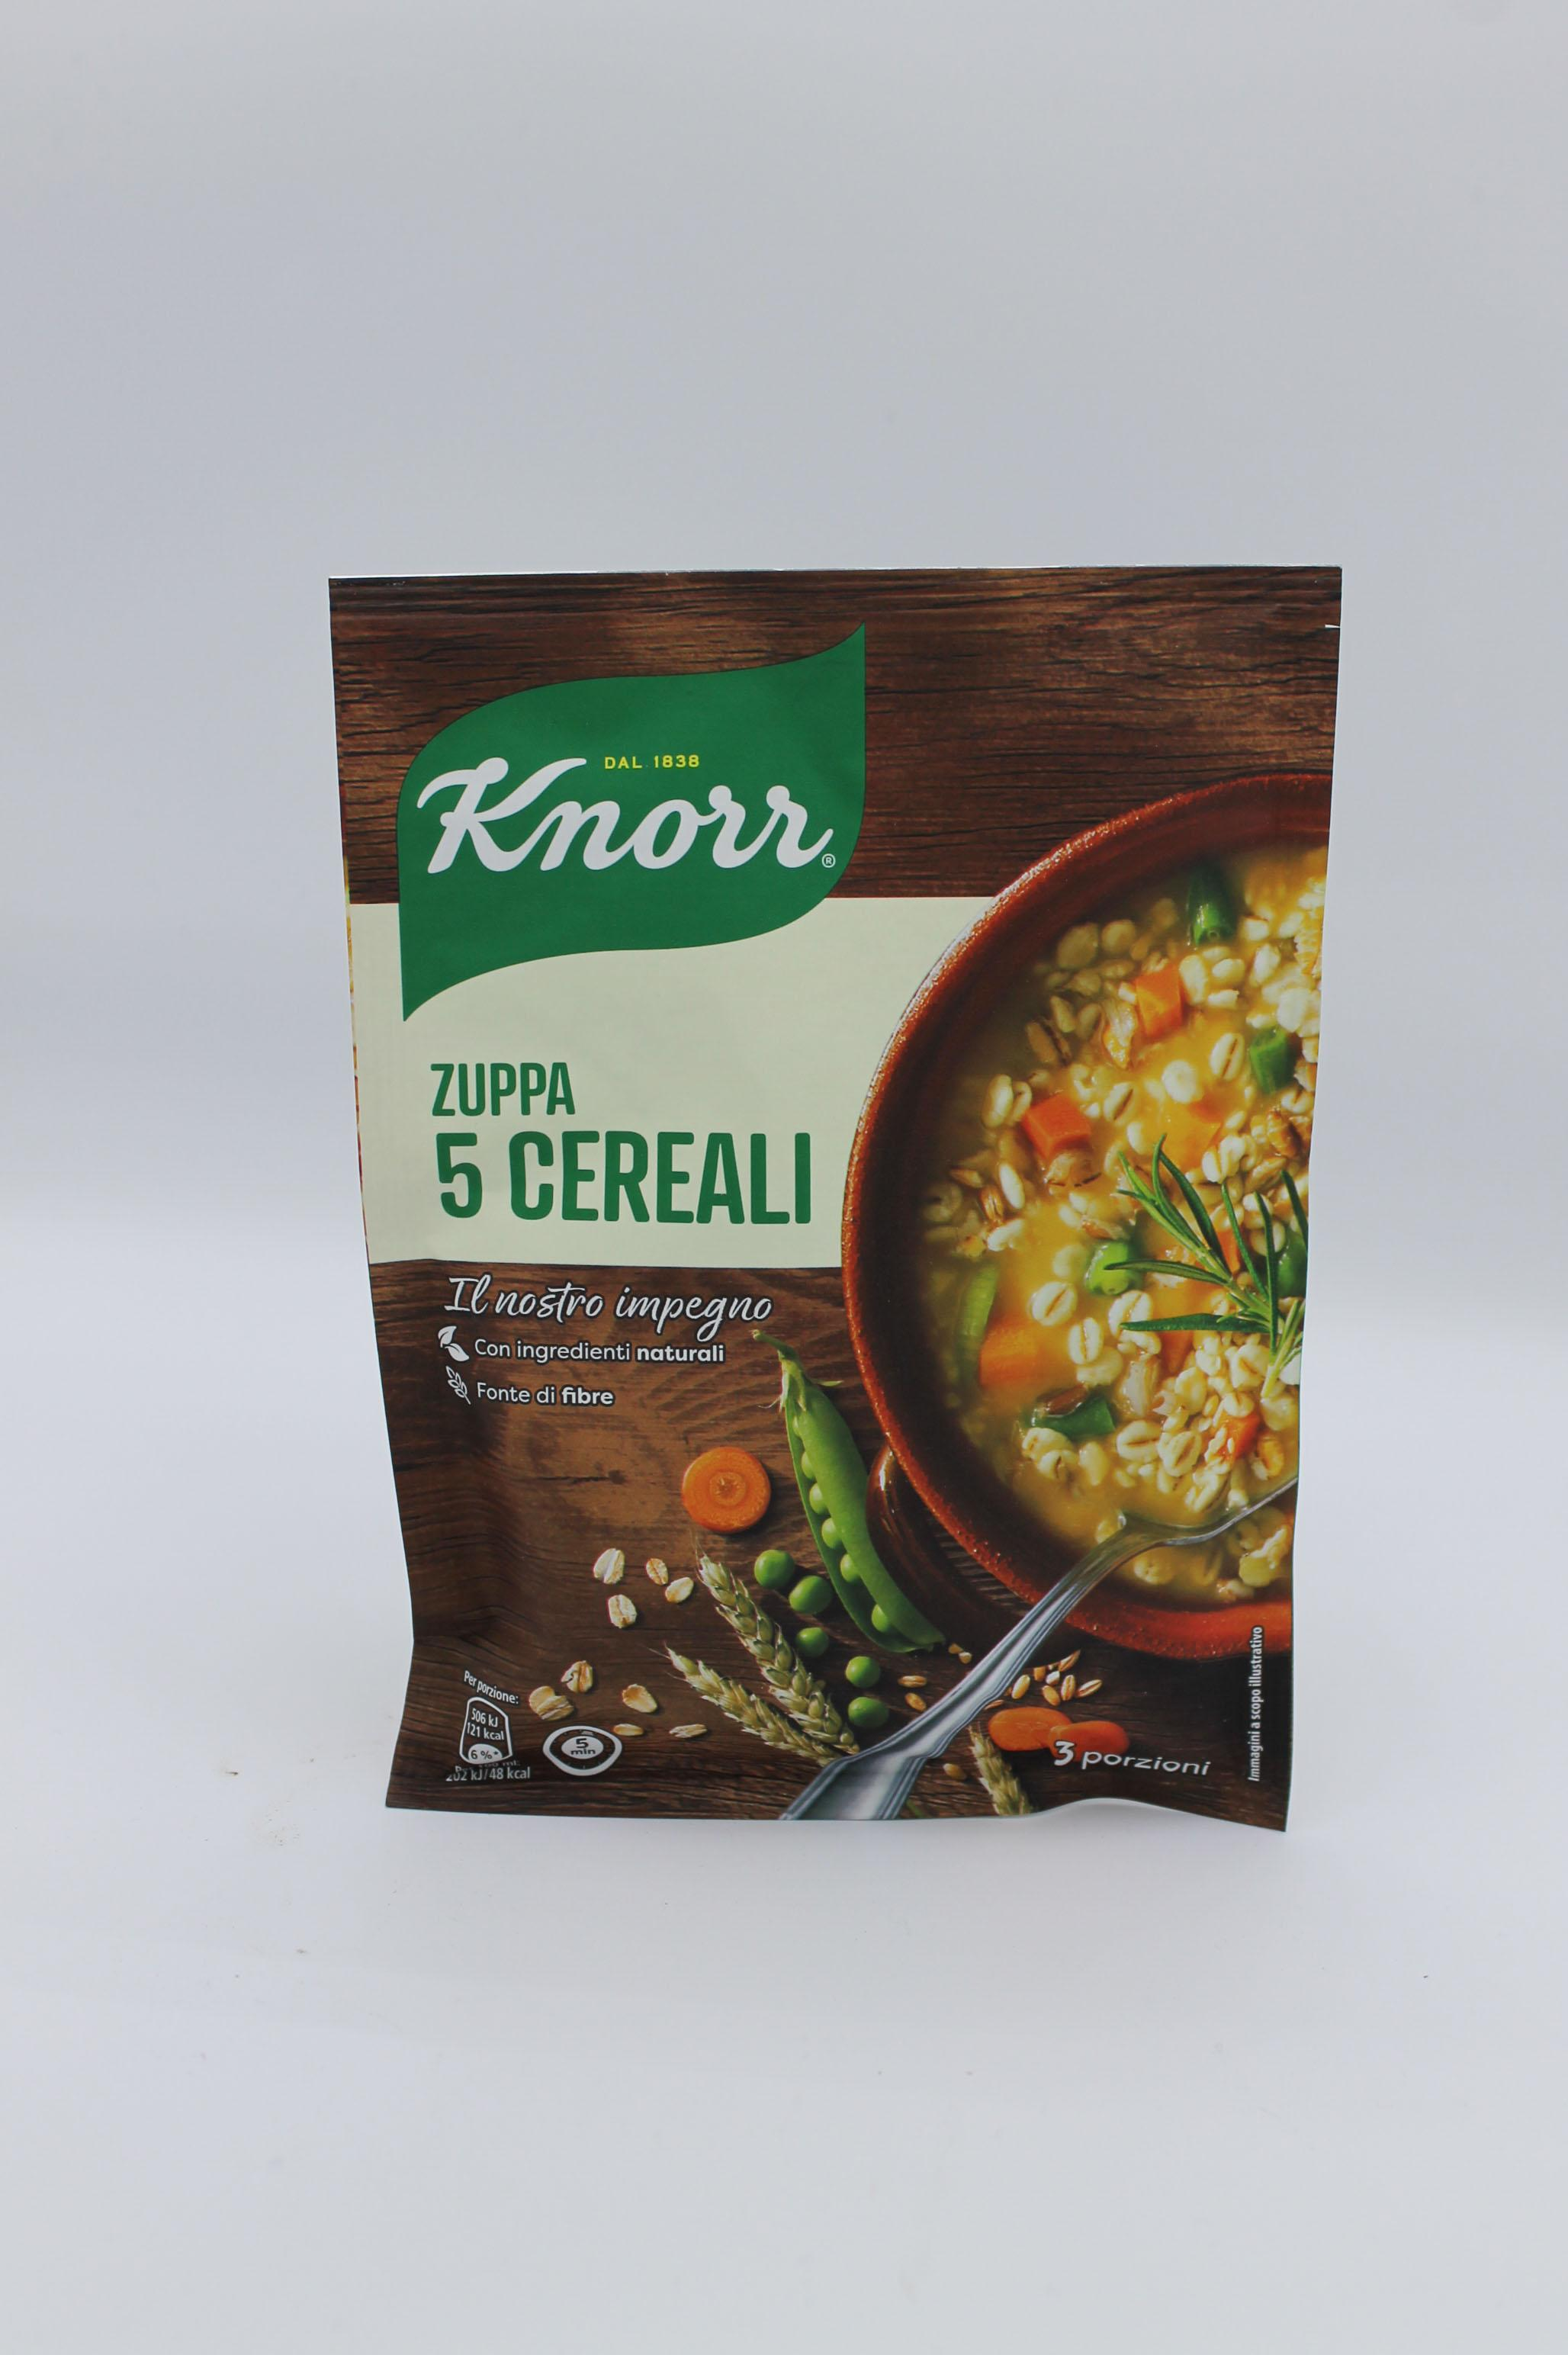 Knorr zuppa ai 5 cereali 109 gr.